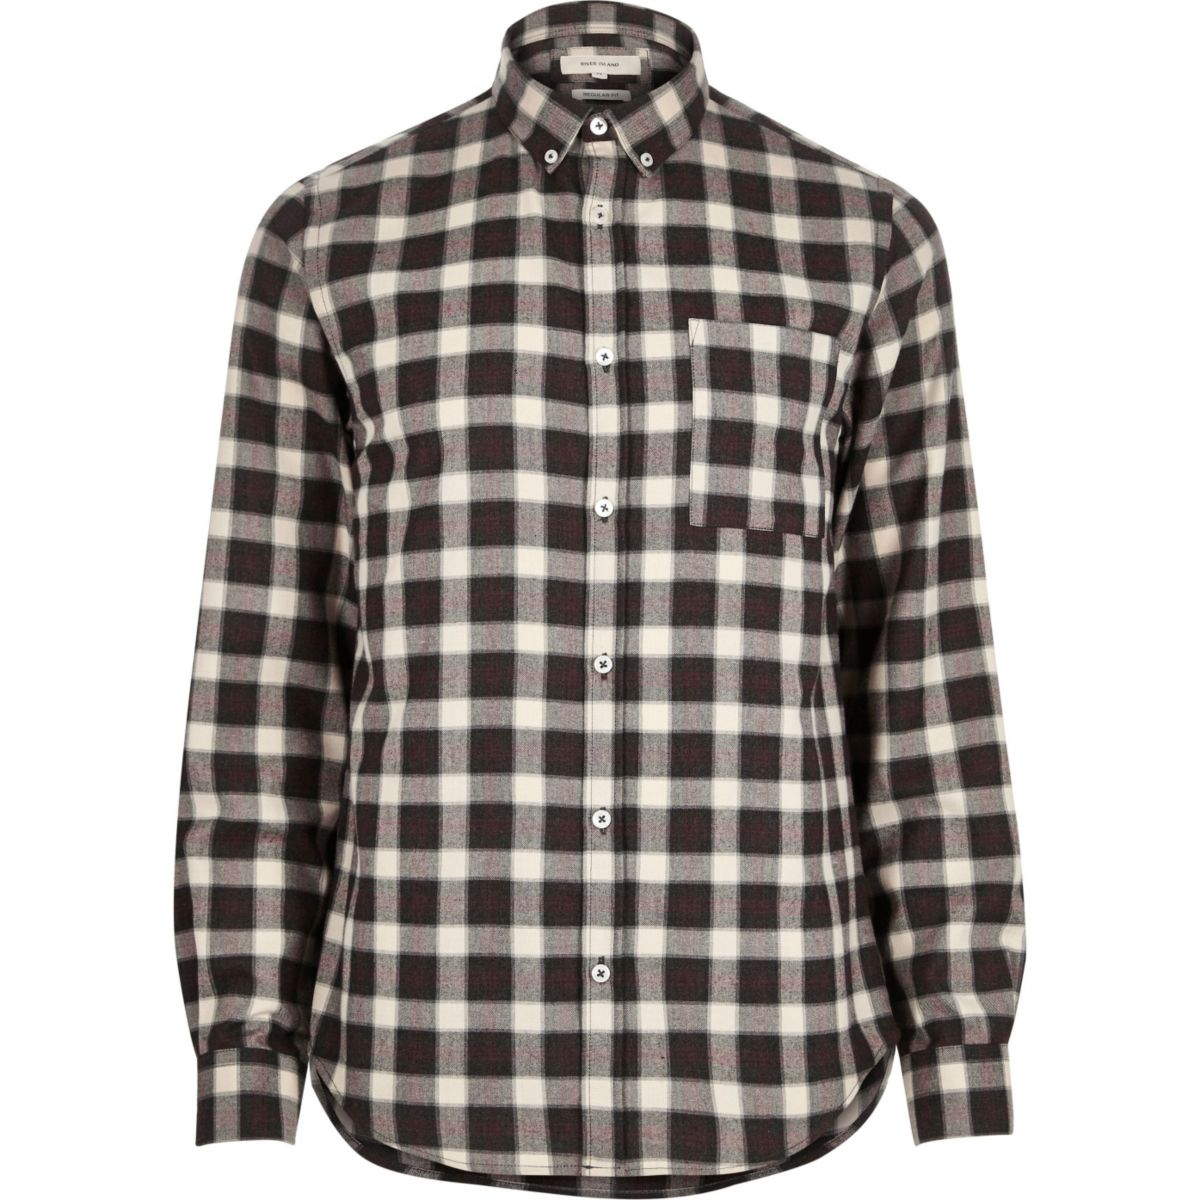 brown check soft flannel shirt shirts sale men